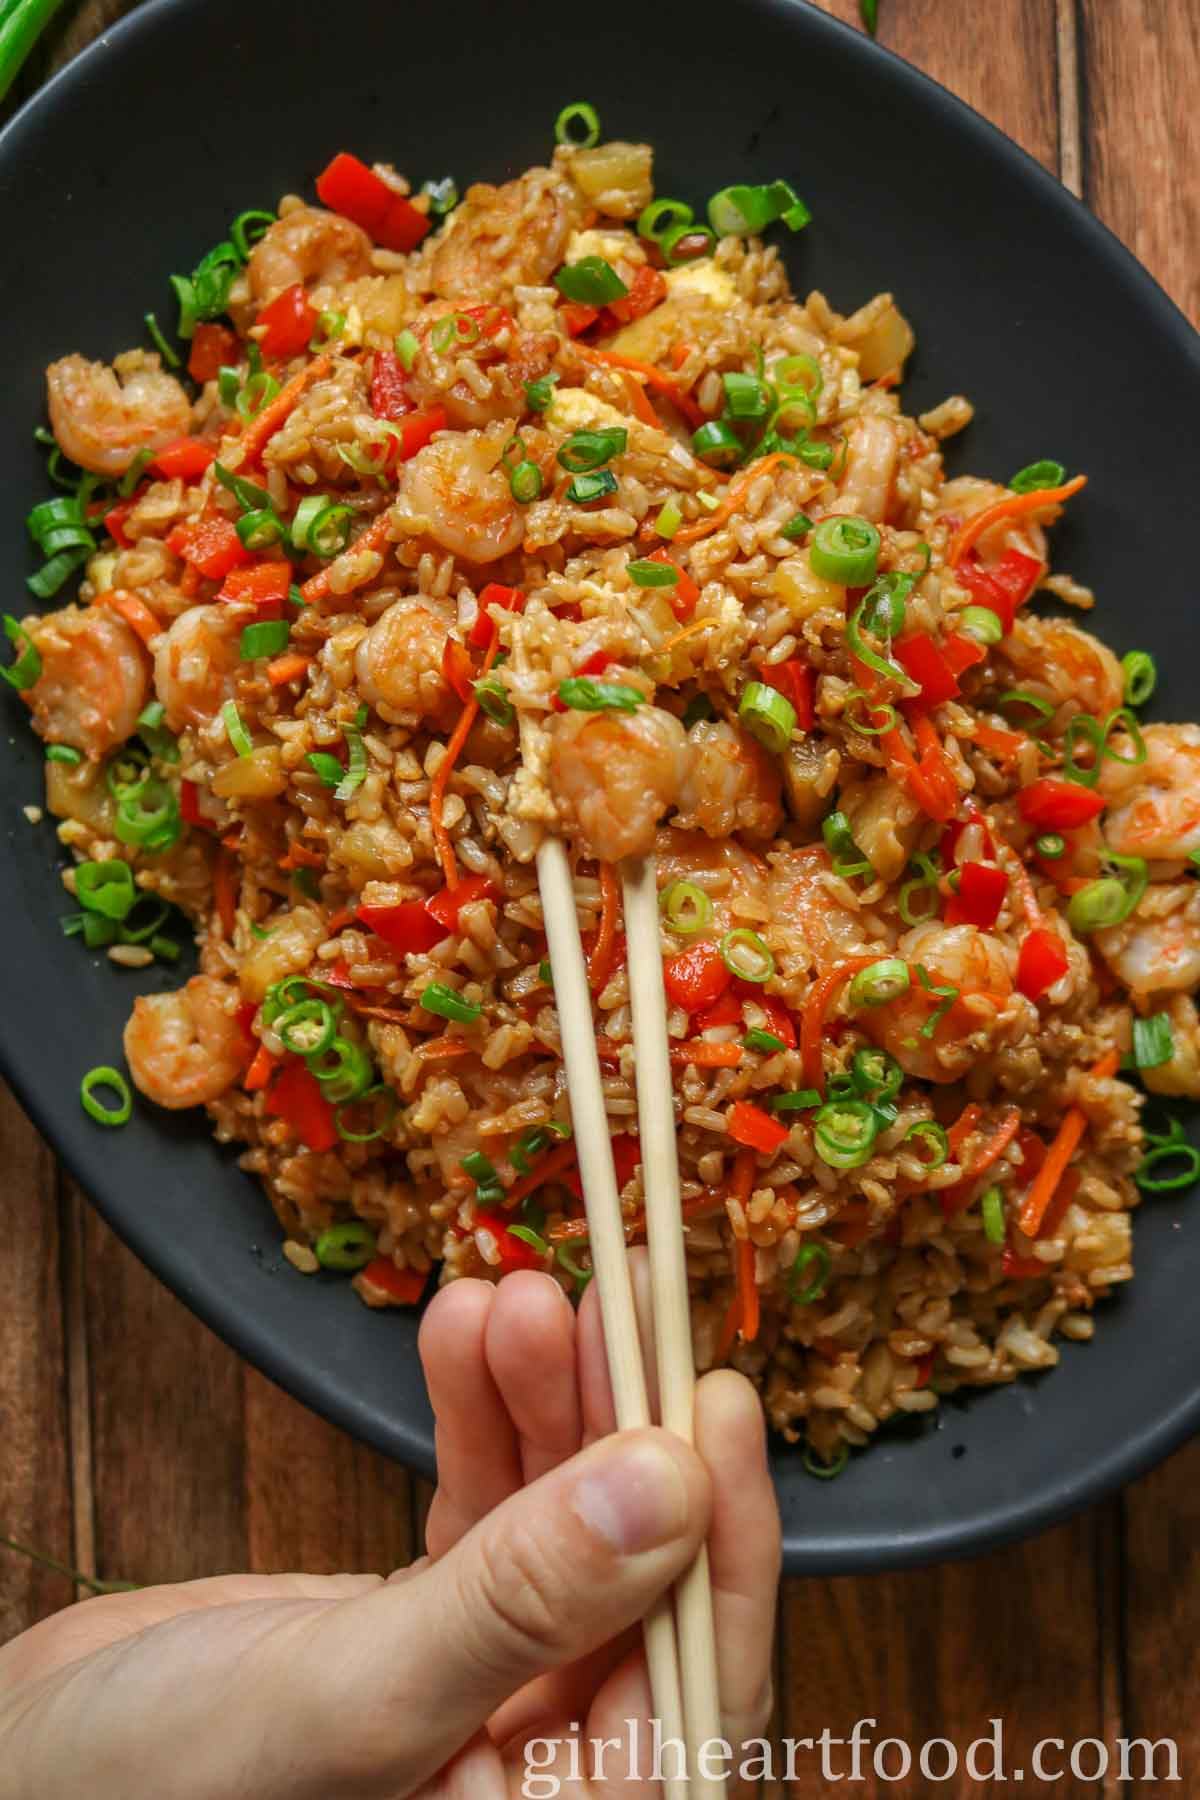 Hand holding chopsticks and scooping up some pineapple shrimp fried rice from a platter.